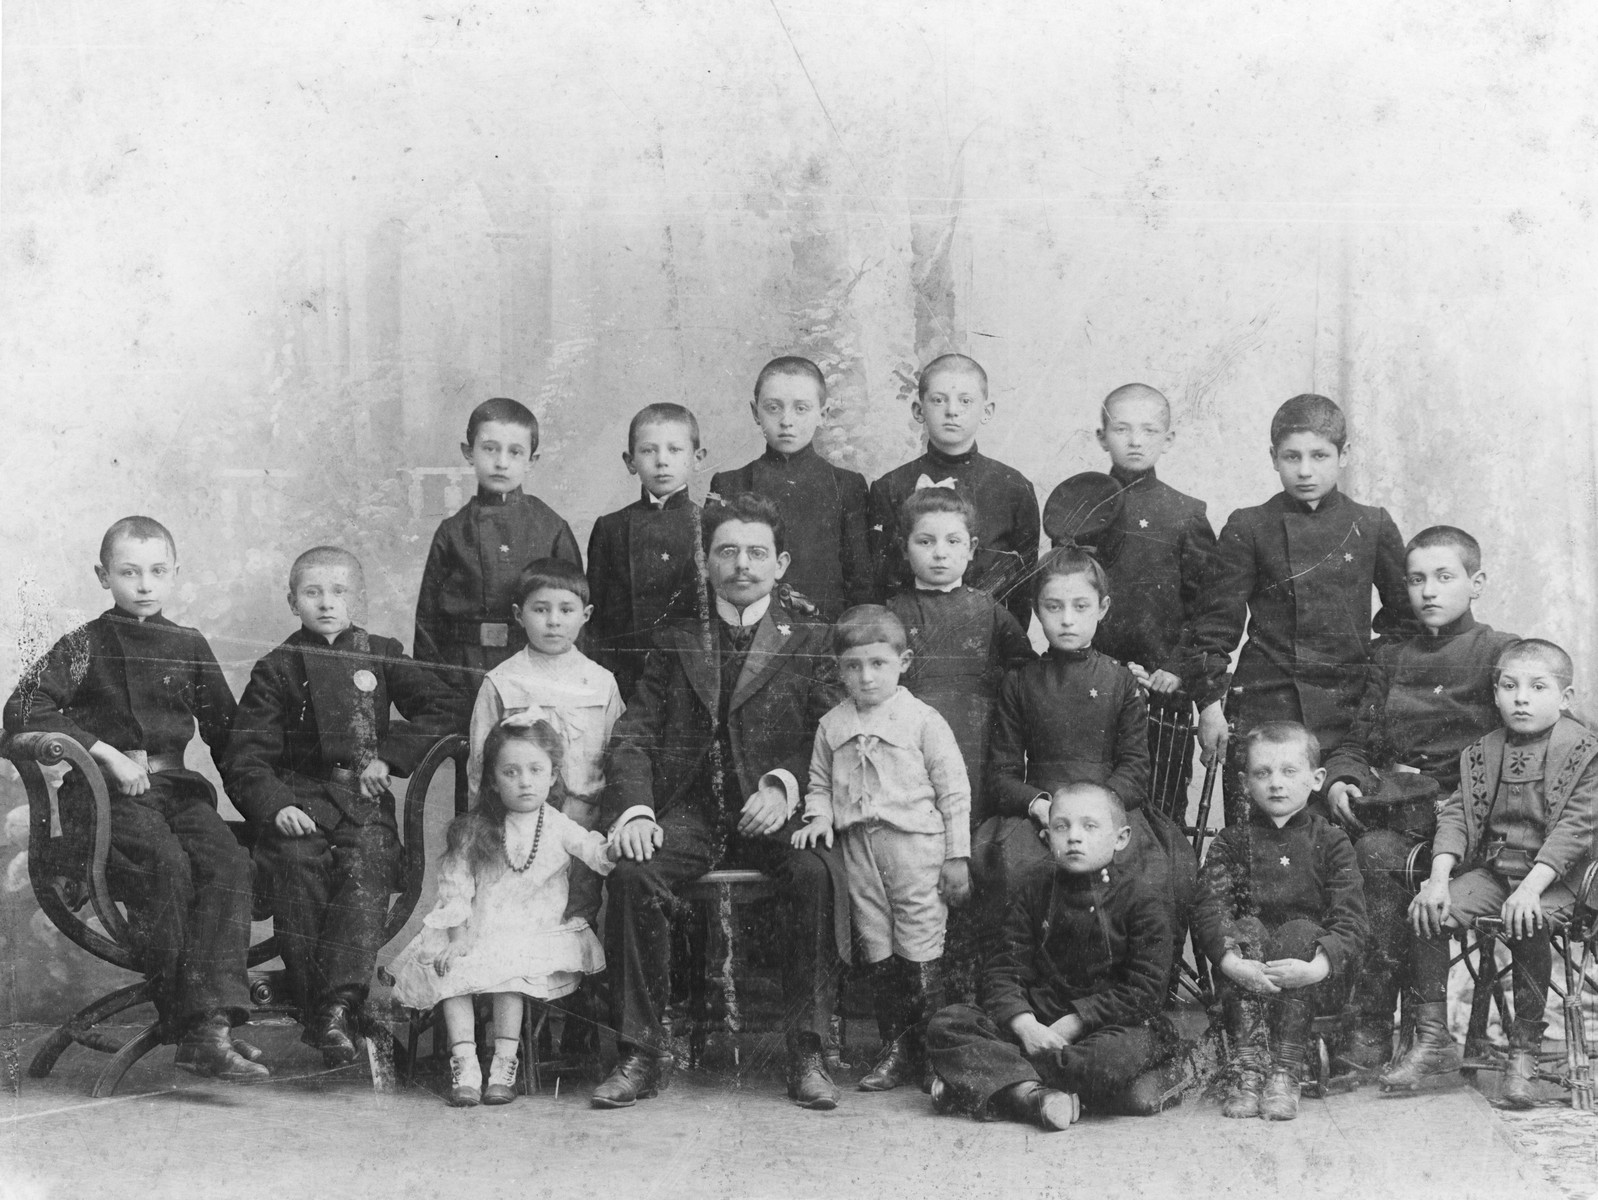 Group portrait of students in a Jewish school in Kovno, Lithuania at the turn of the century.  Pictured in the center is the teacher, Mr. Prokovnik.